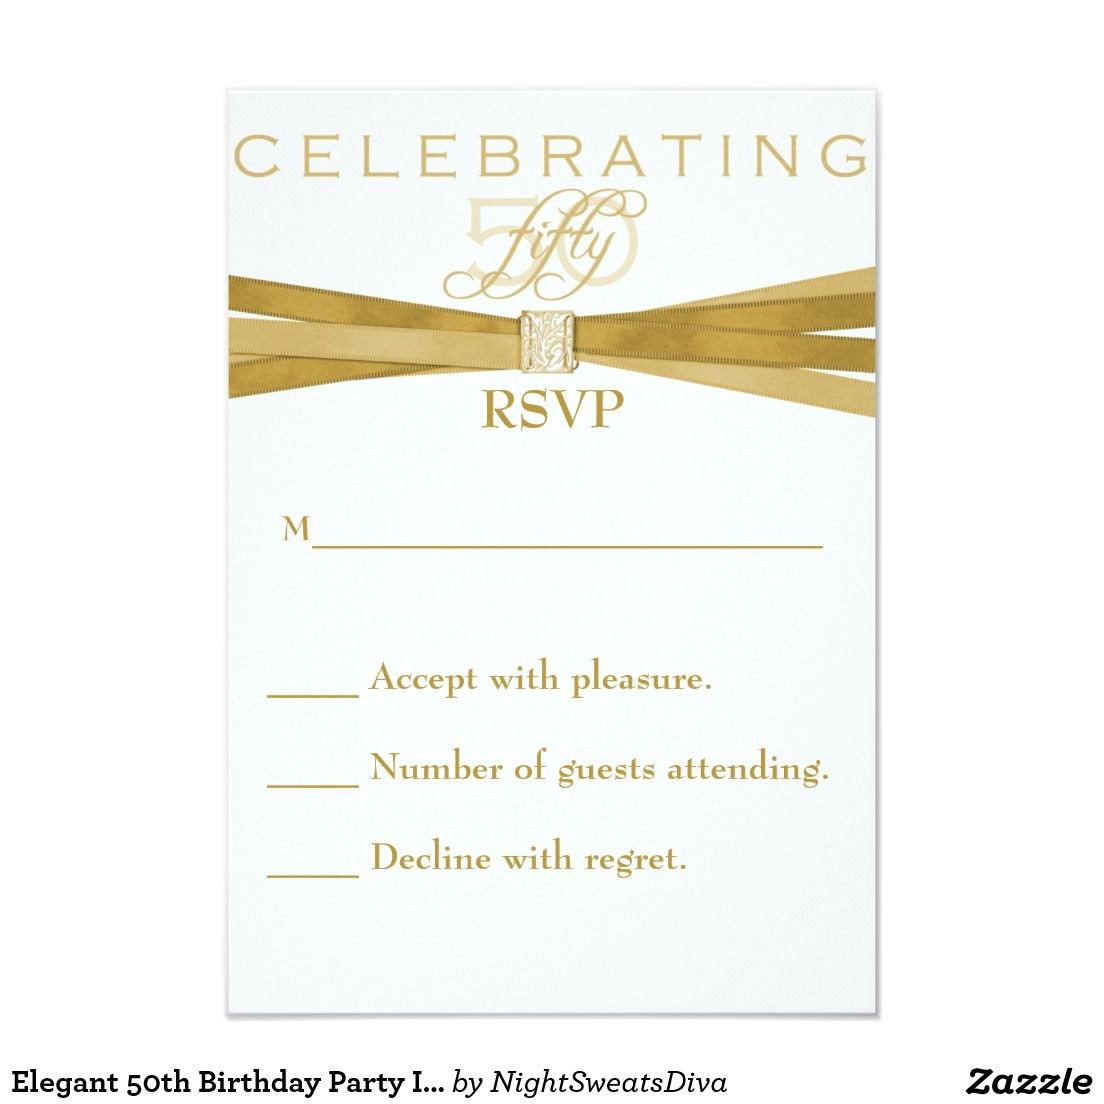 rsvp invitation card sample